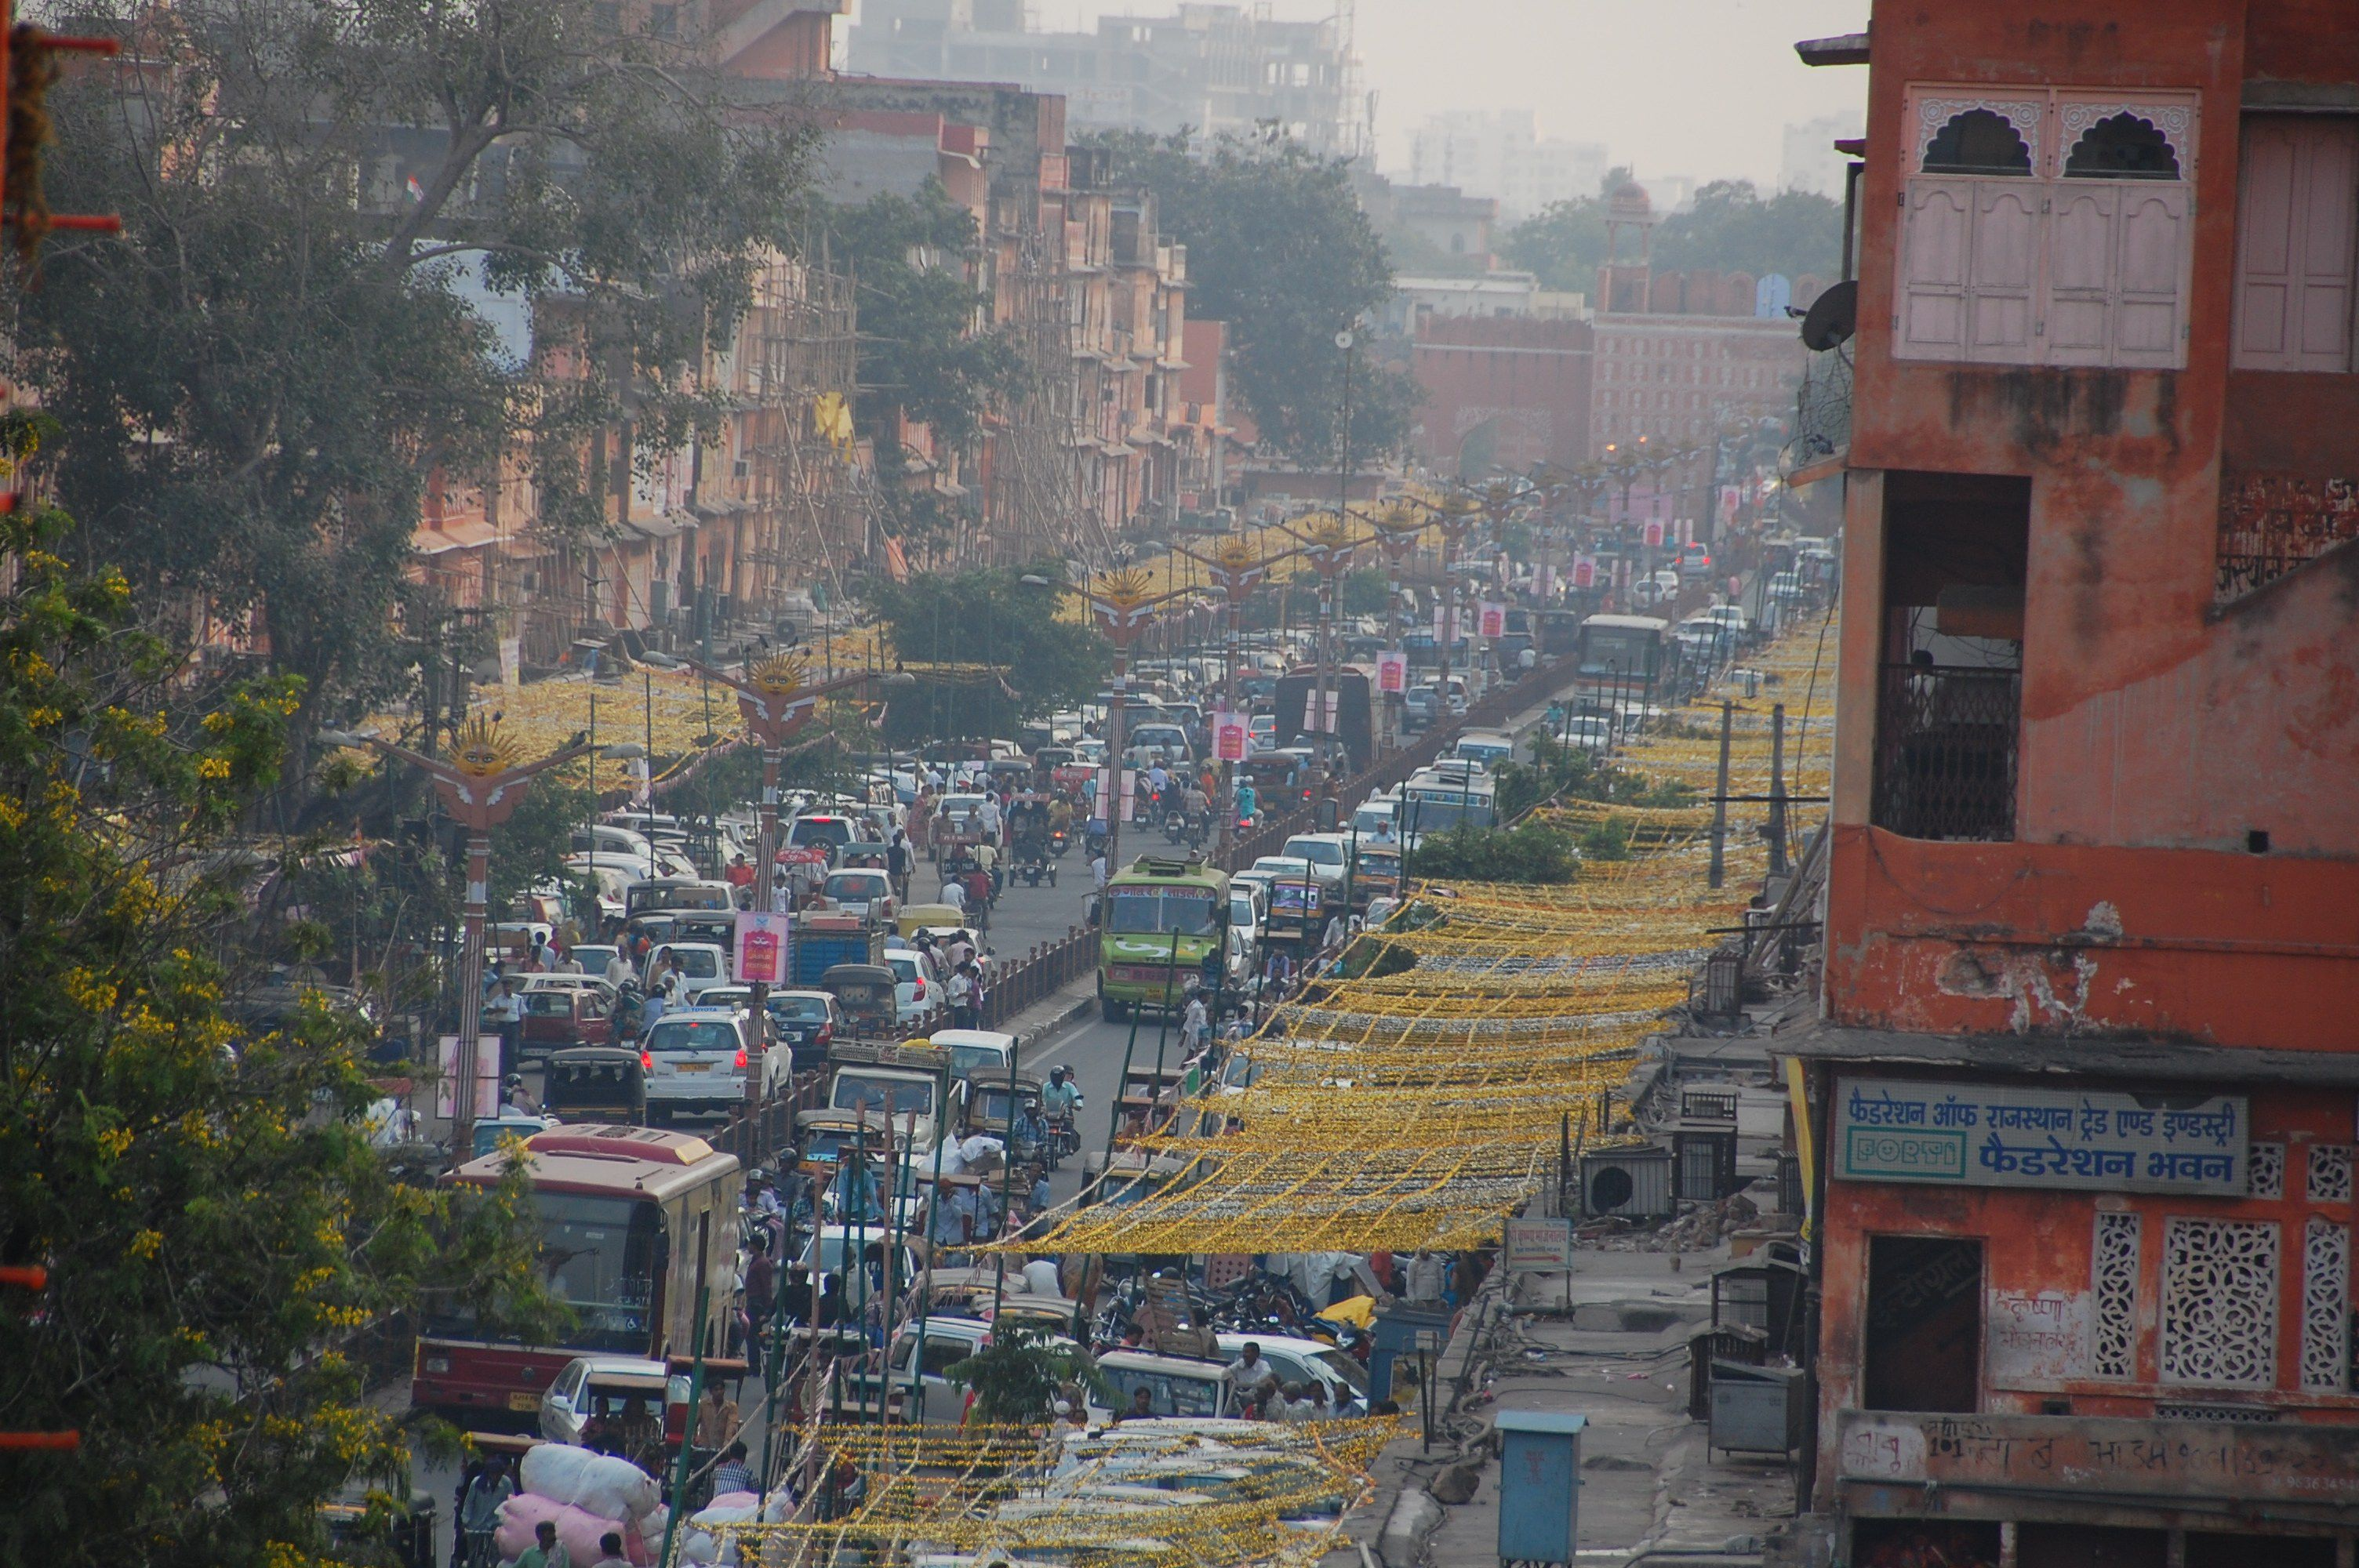 India is crowded